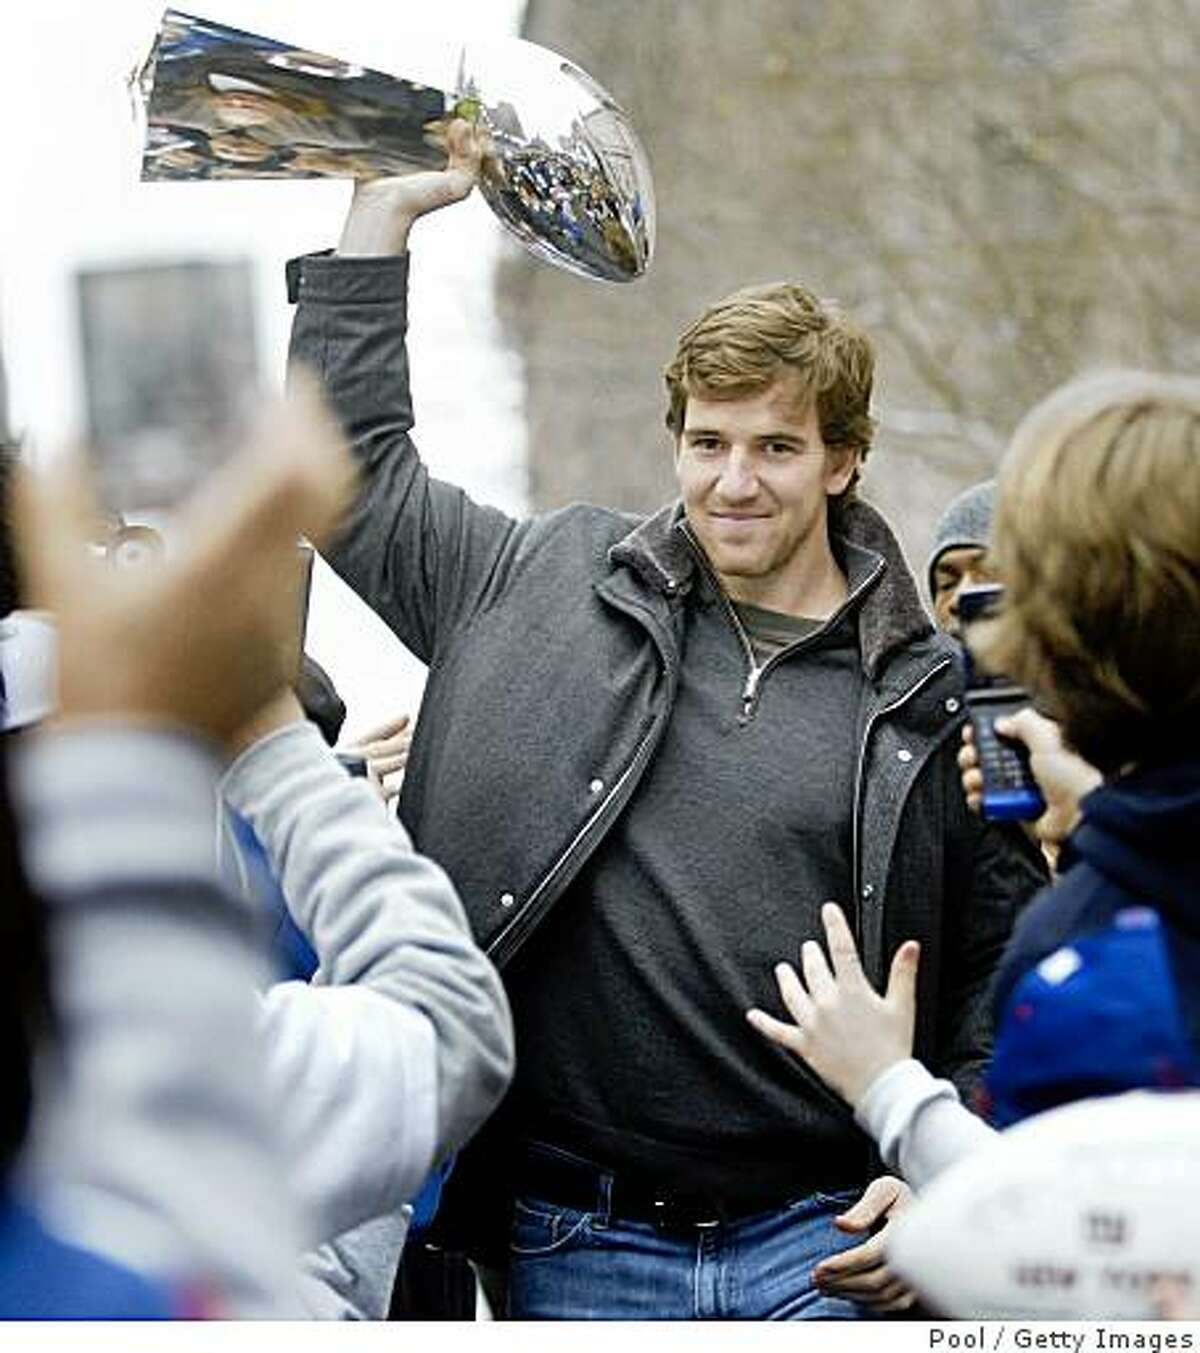 NEW YORK - FEBRUARY 5: New York Giants quarterback Eli Manning makes his way to the stage carrying the Vince Lomardi Trophy for a ceremony honoring the team February 5, 2008 in New York City. The Giants beat the New England Patriots in Super Bowl XLII 17-14 on Sunday. (Photo by Julie Jacobson-Pool/Getty Images)